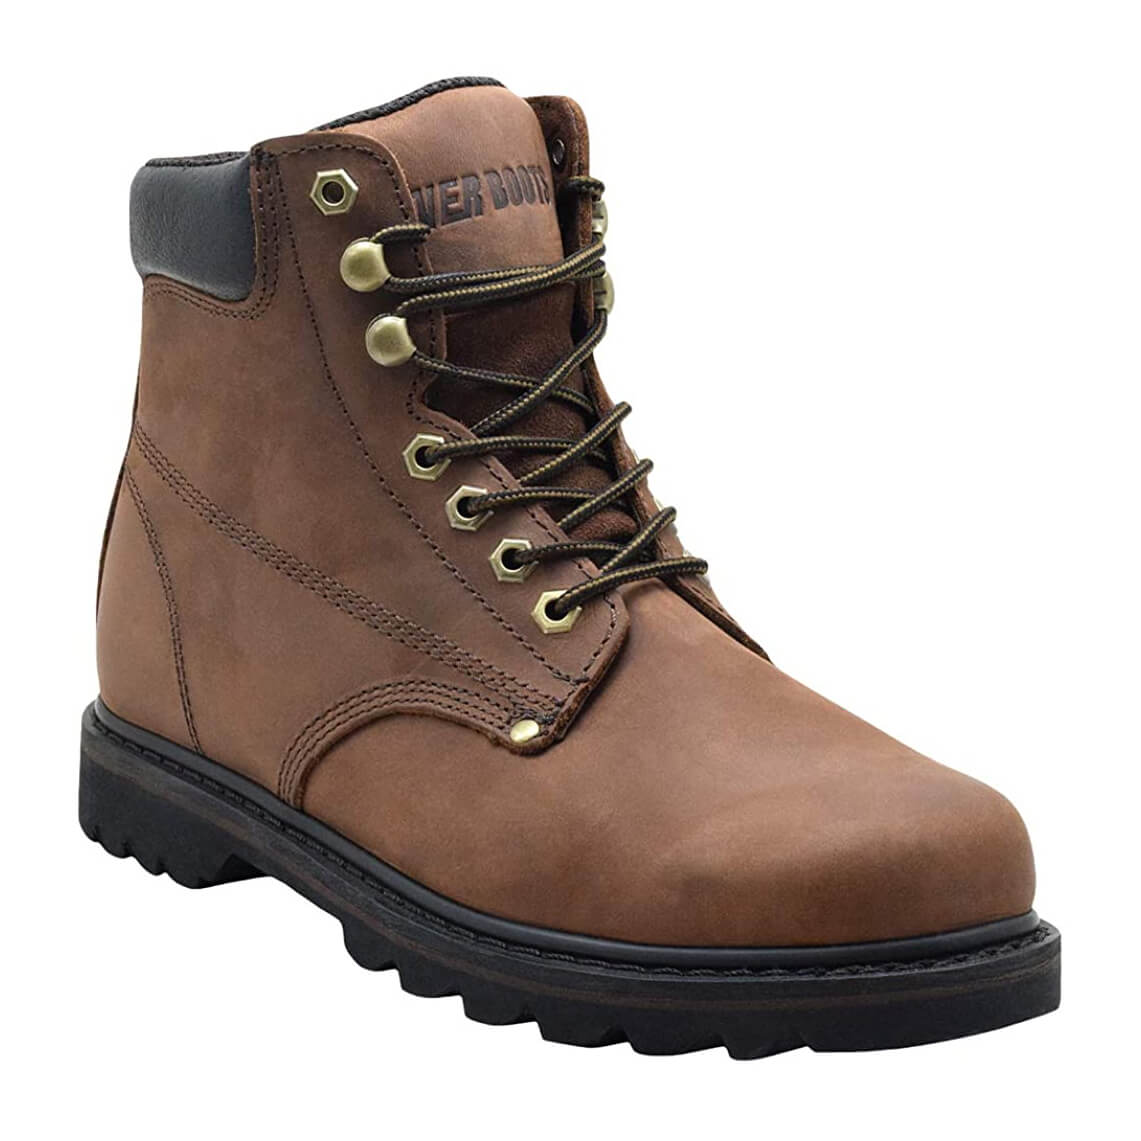 EVER BOOTS Tank Men's Soft Toe Oil Full Grain Leather Work Boots Construction Rubber Sole